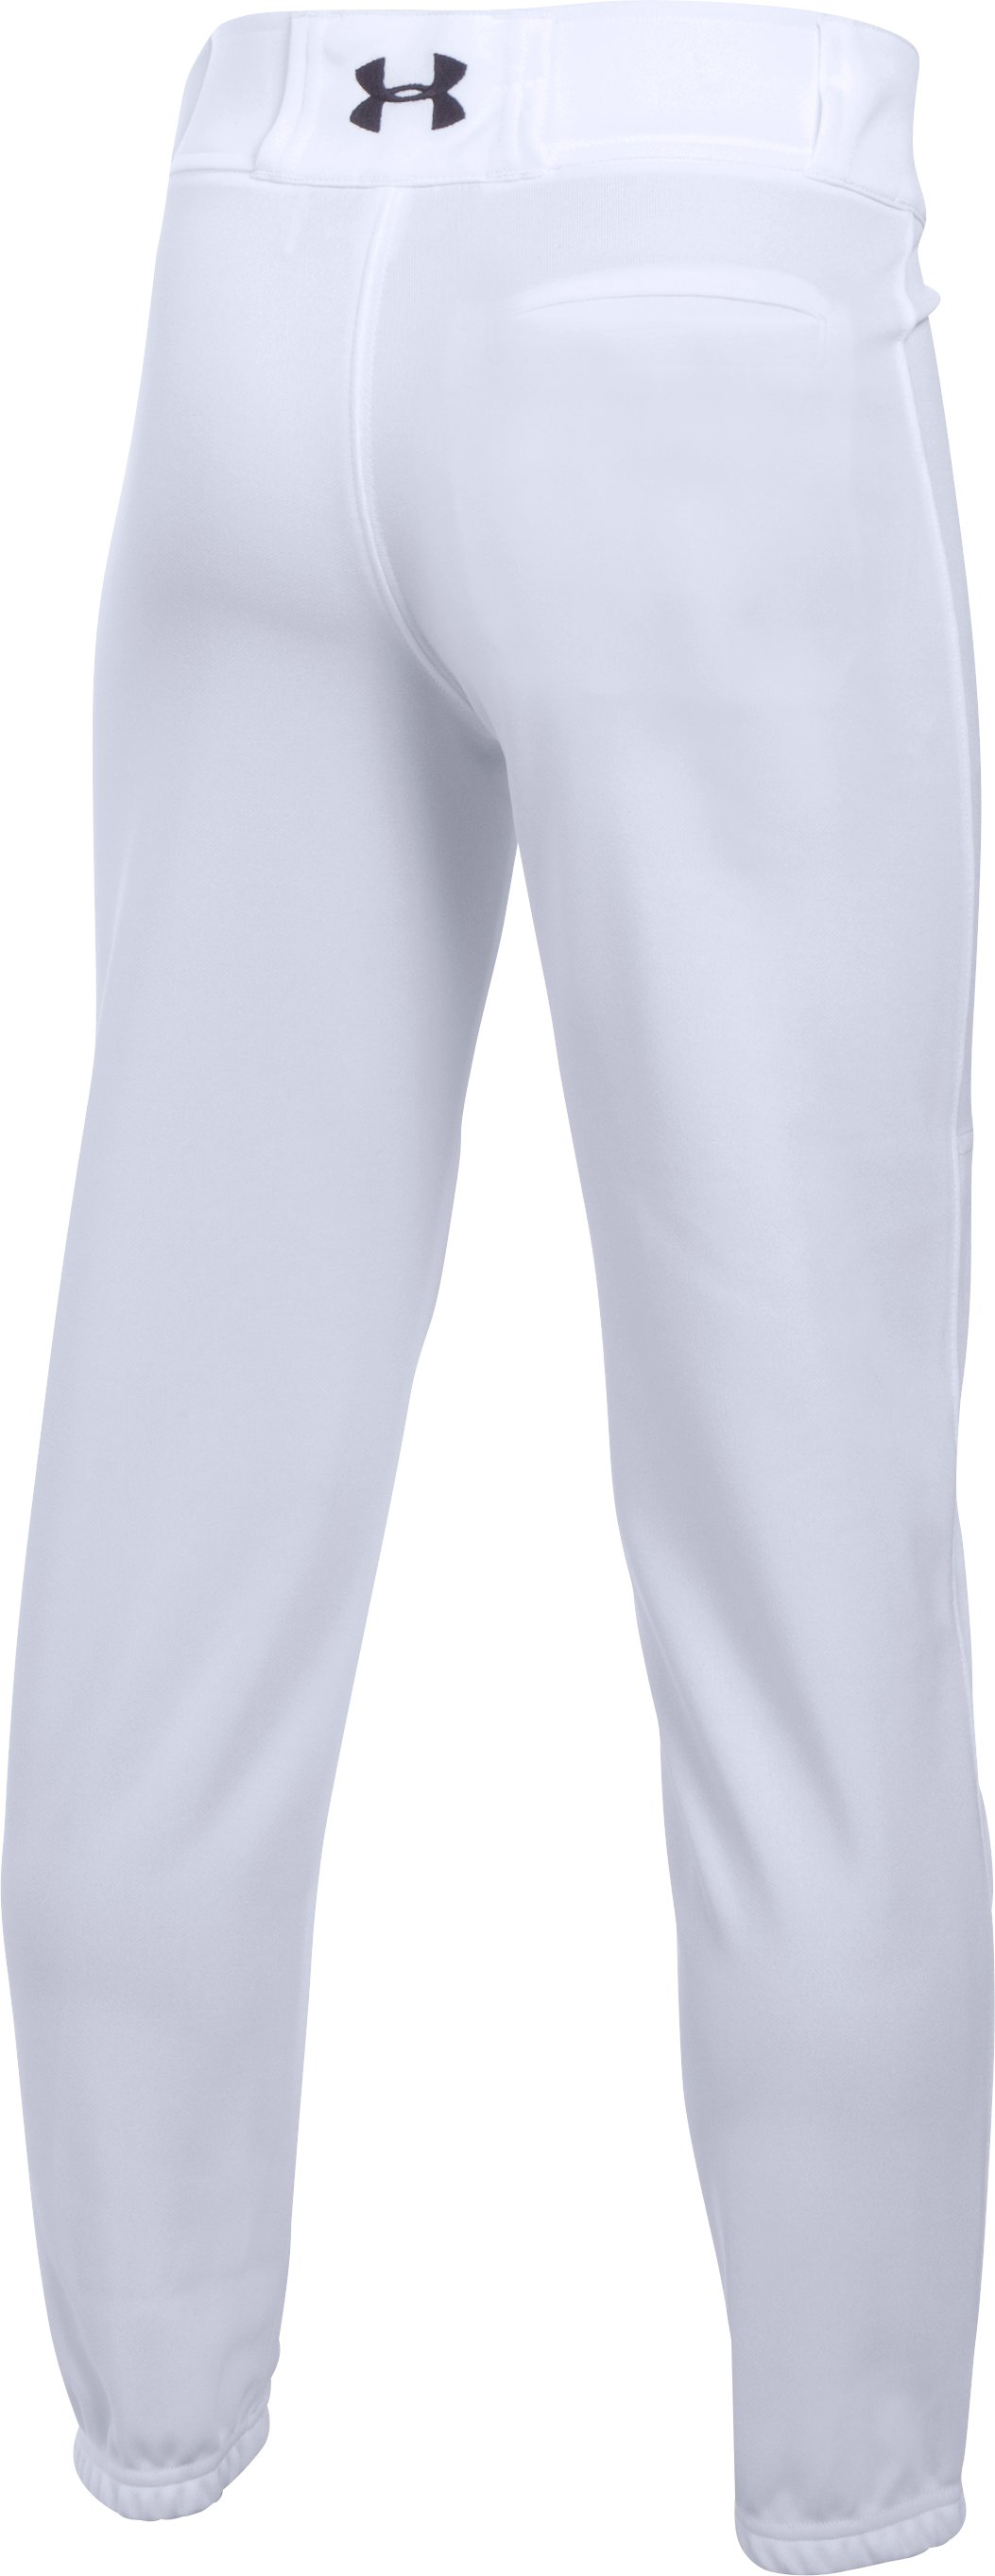 Boys' UA Clean Up Cuffed Baseball Pants, White, undefined